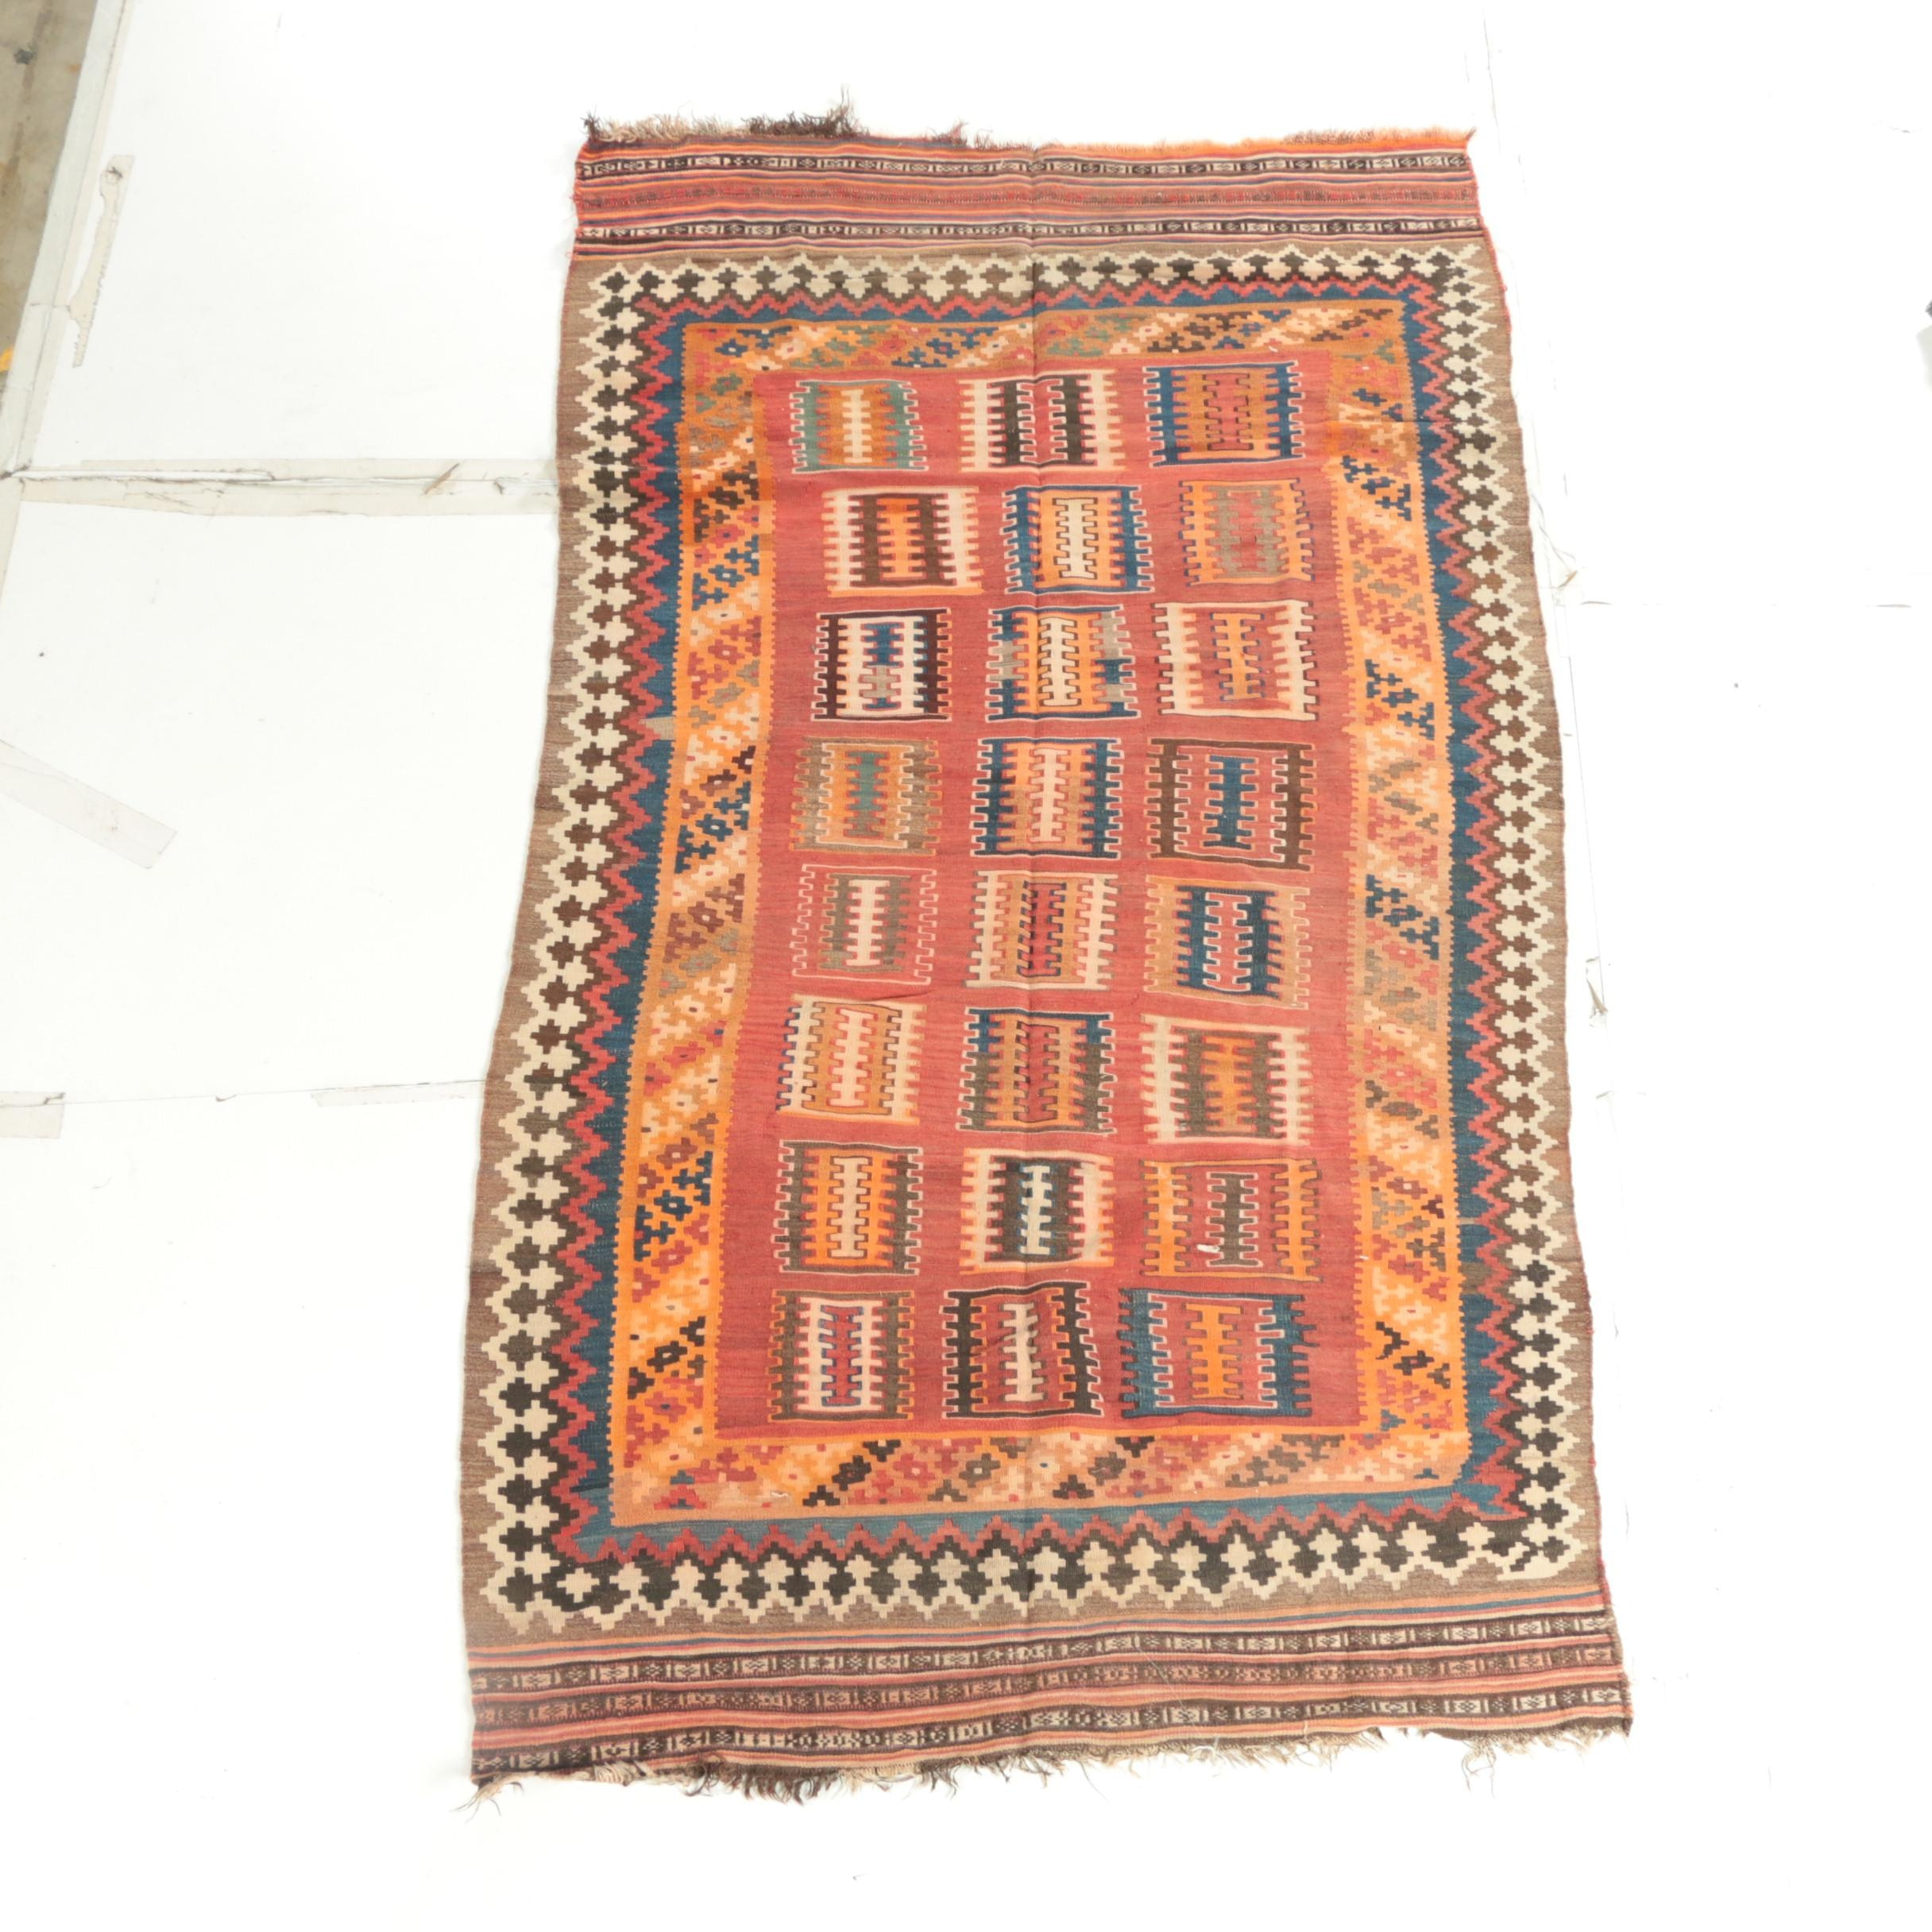 Semi-Antique Handwoven and Embroidered Anatolian Tribal Area Kilim